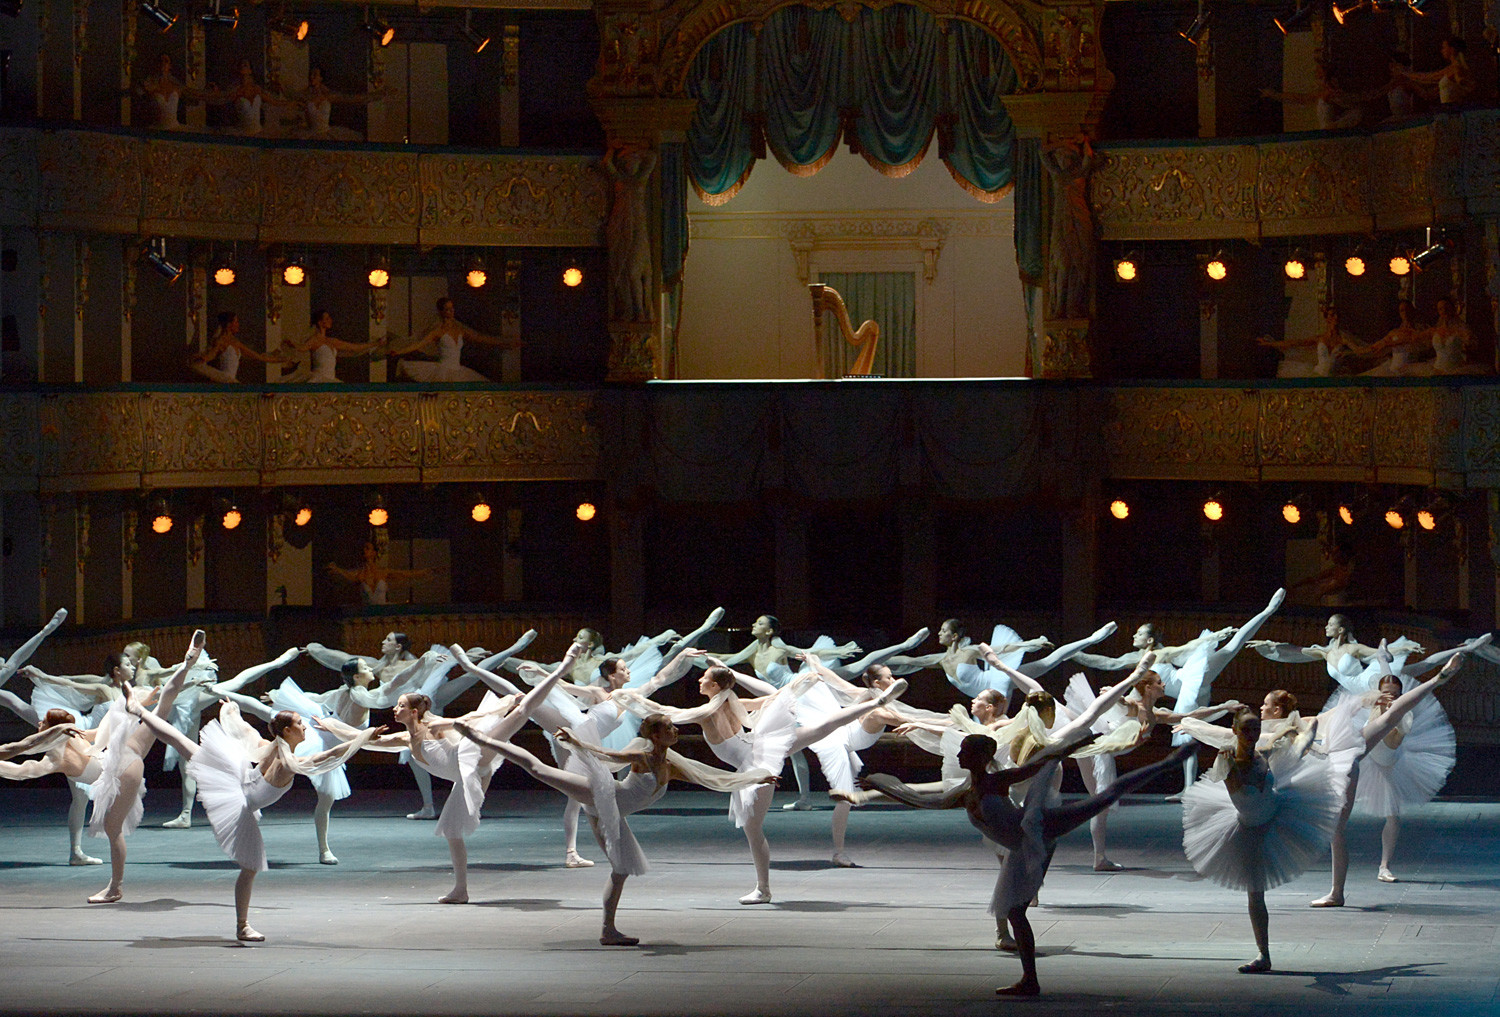 Ballet dancers of the Mariinsky Theater in the scene